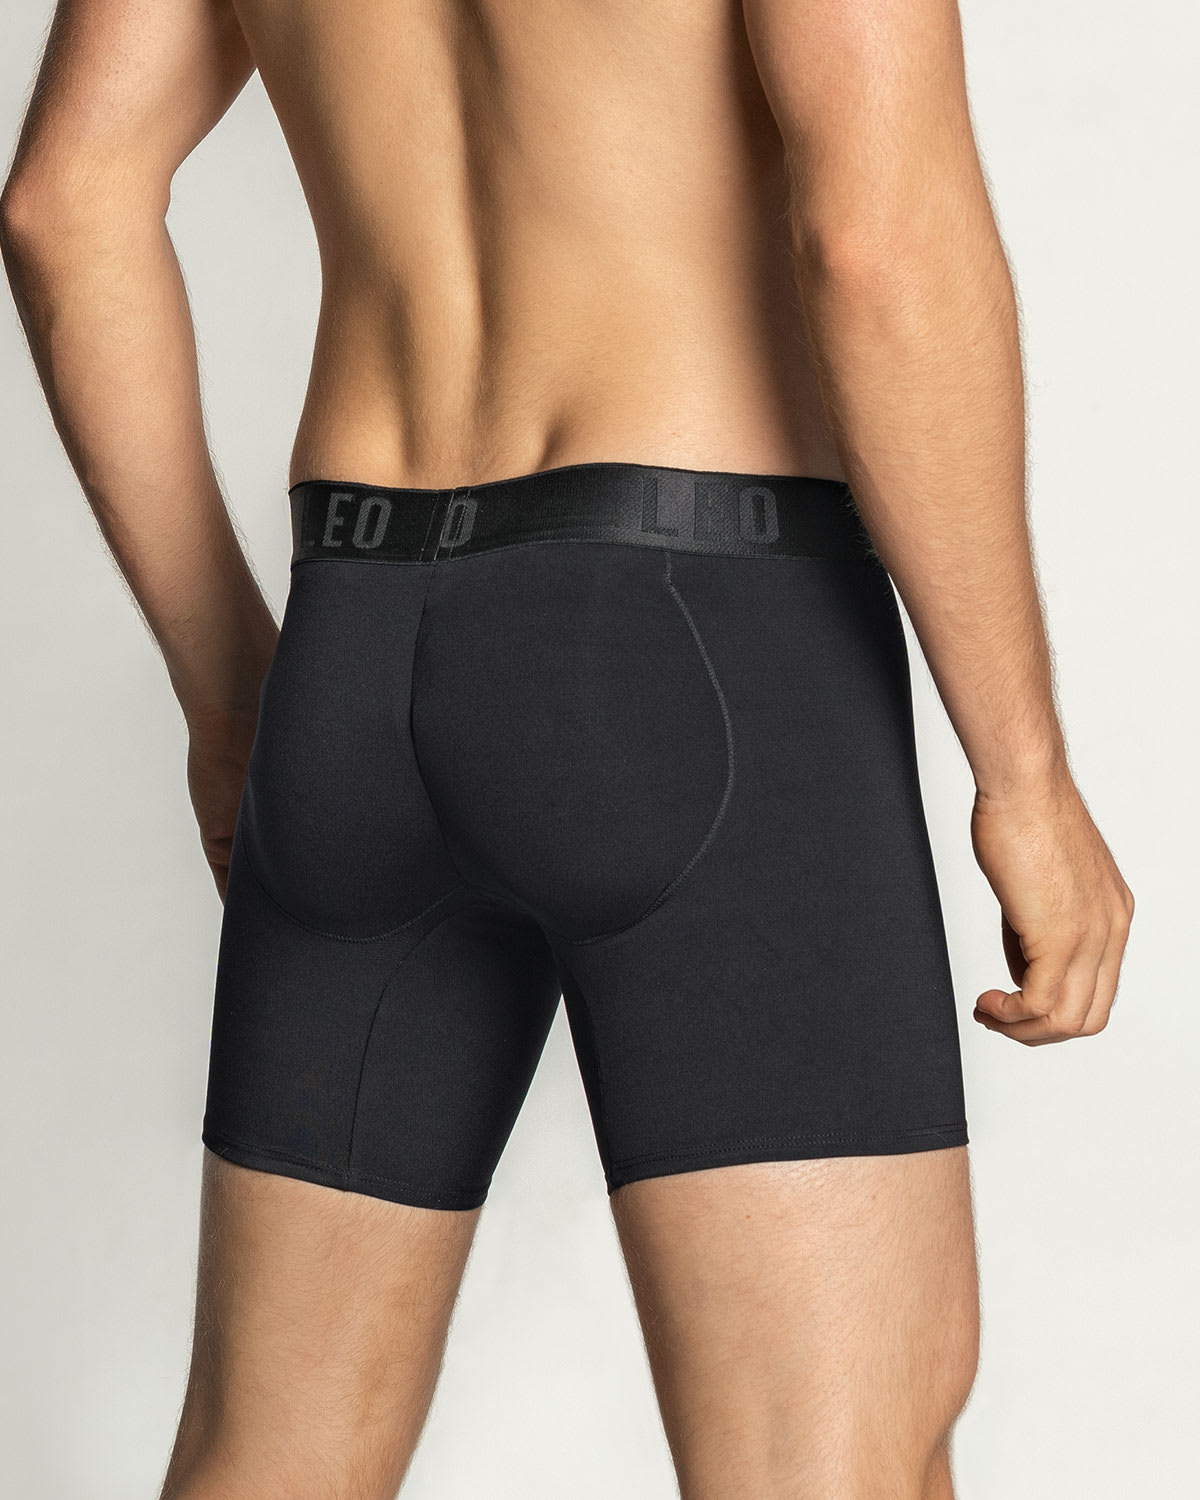 BUTT ENHANCER PADDED MEN/'S UNDERWEAR MICROFIBER 2 PACK SALE MADE IN THE USA